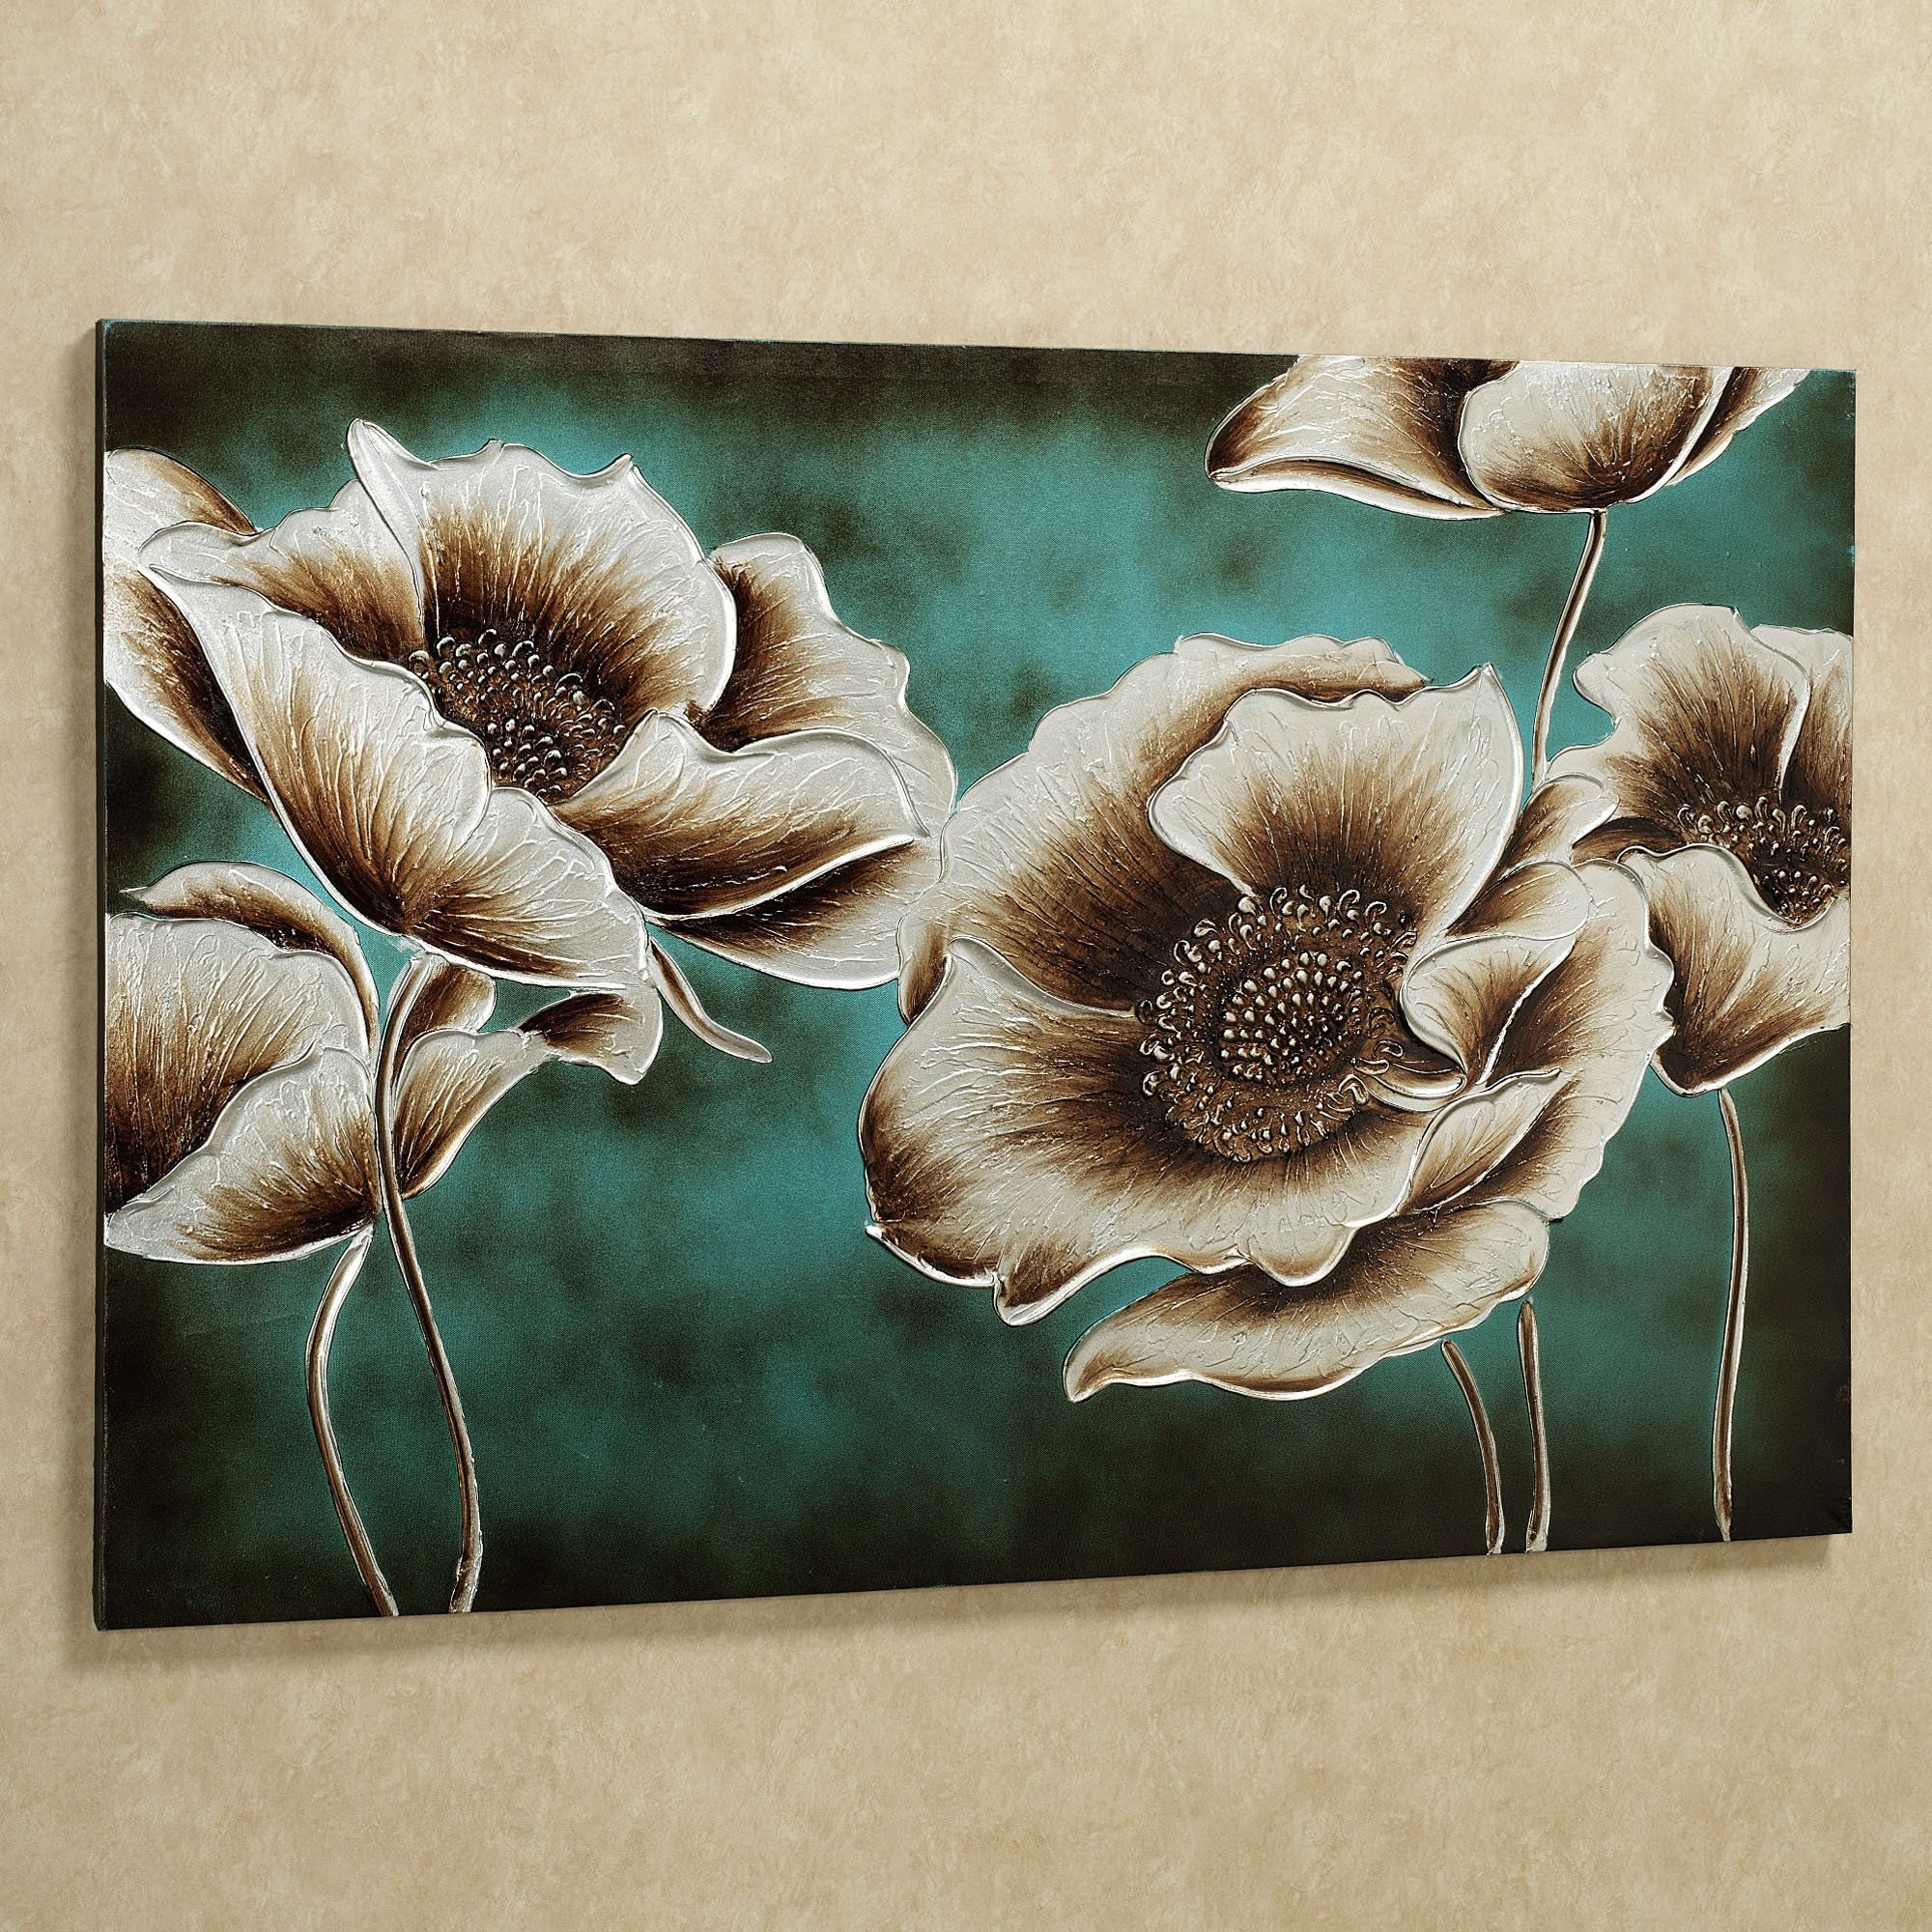 Teal And Brown Wall Art jardin de pavot poppy flower canvas wall art | j's favorites